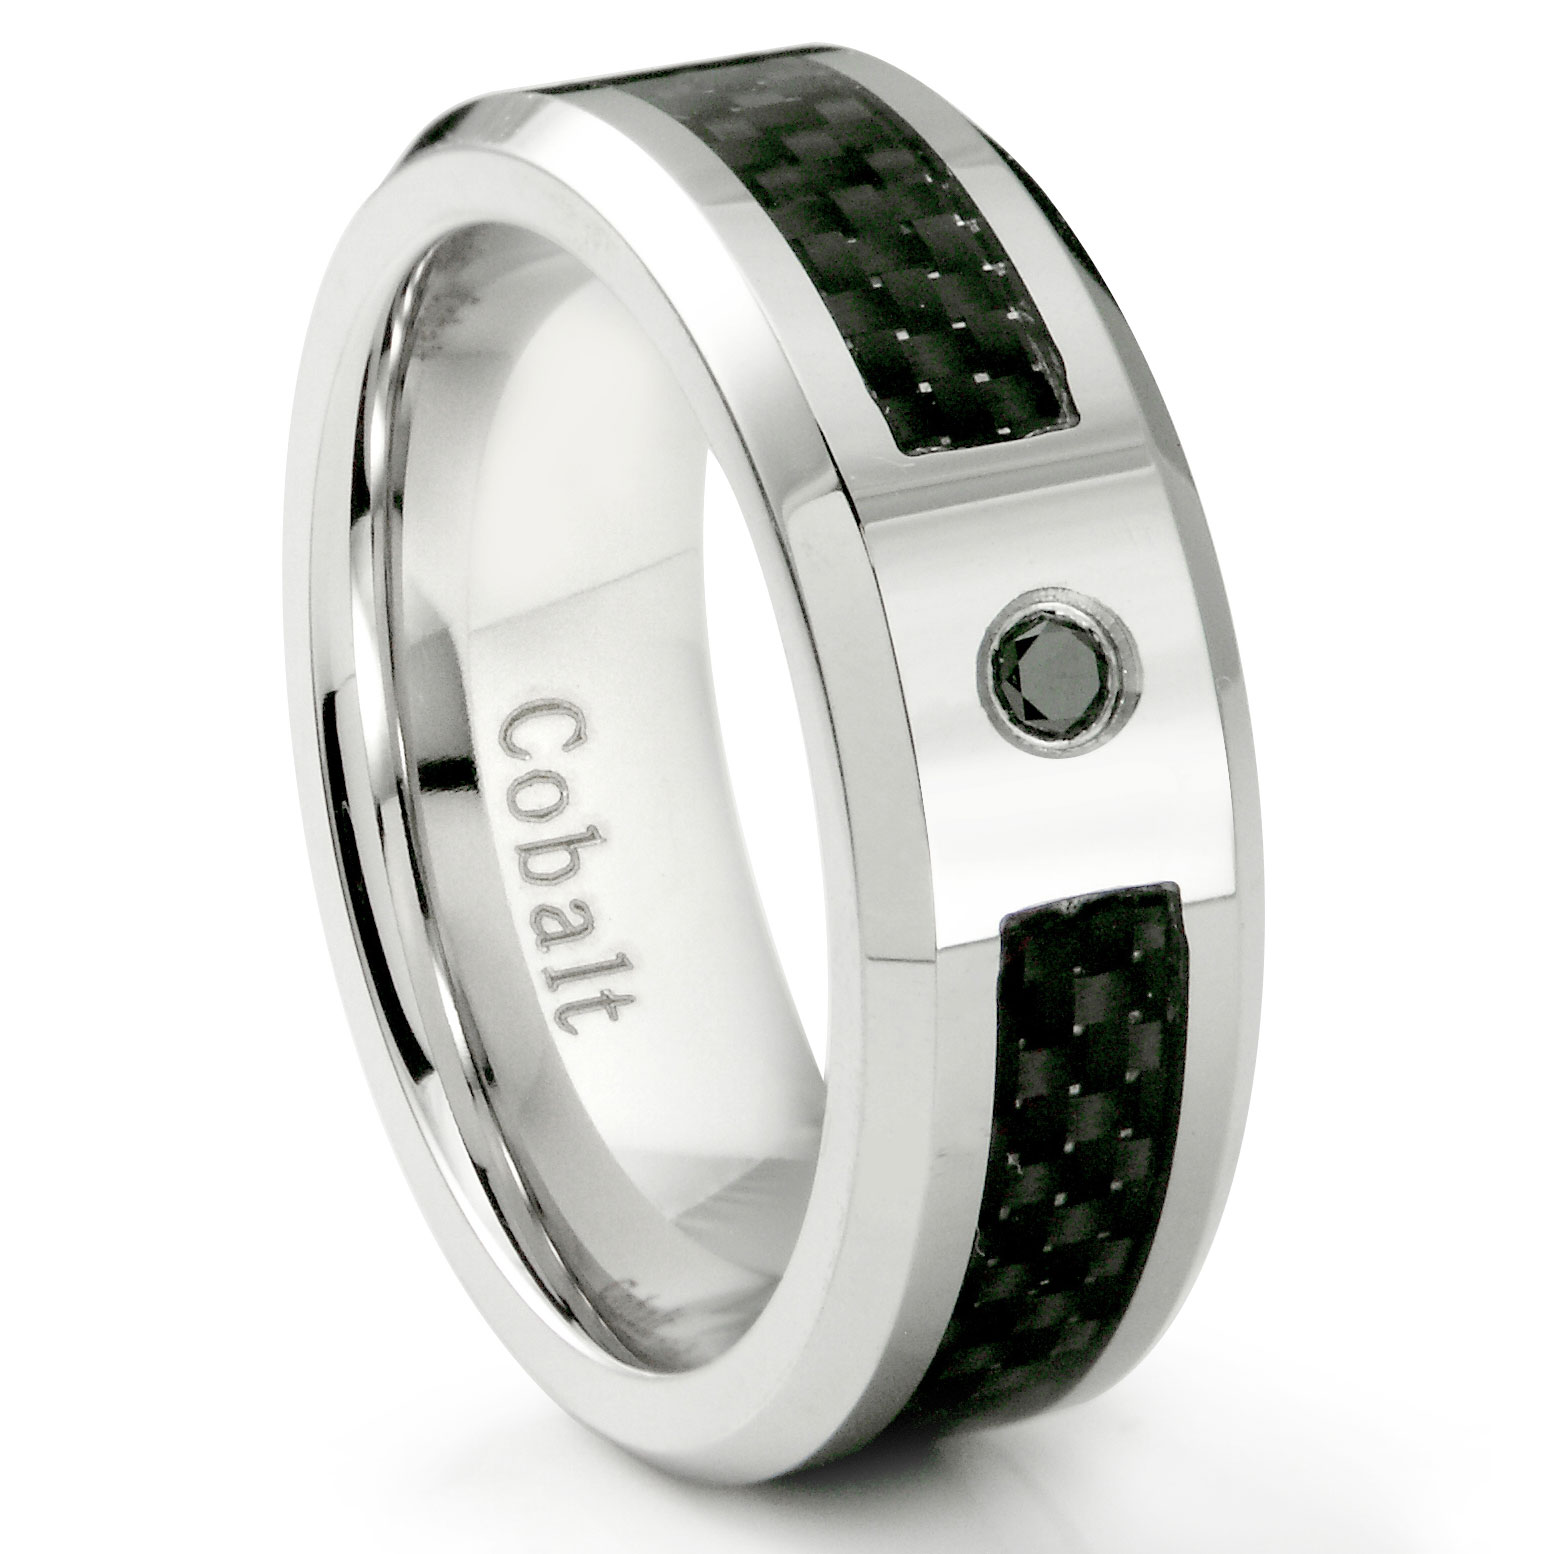 ring rings resized be tungsten sale can black mens bands beveled wedding cobalt band all awesome colored hammered tu chrome for images